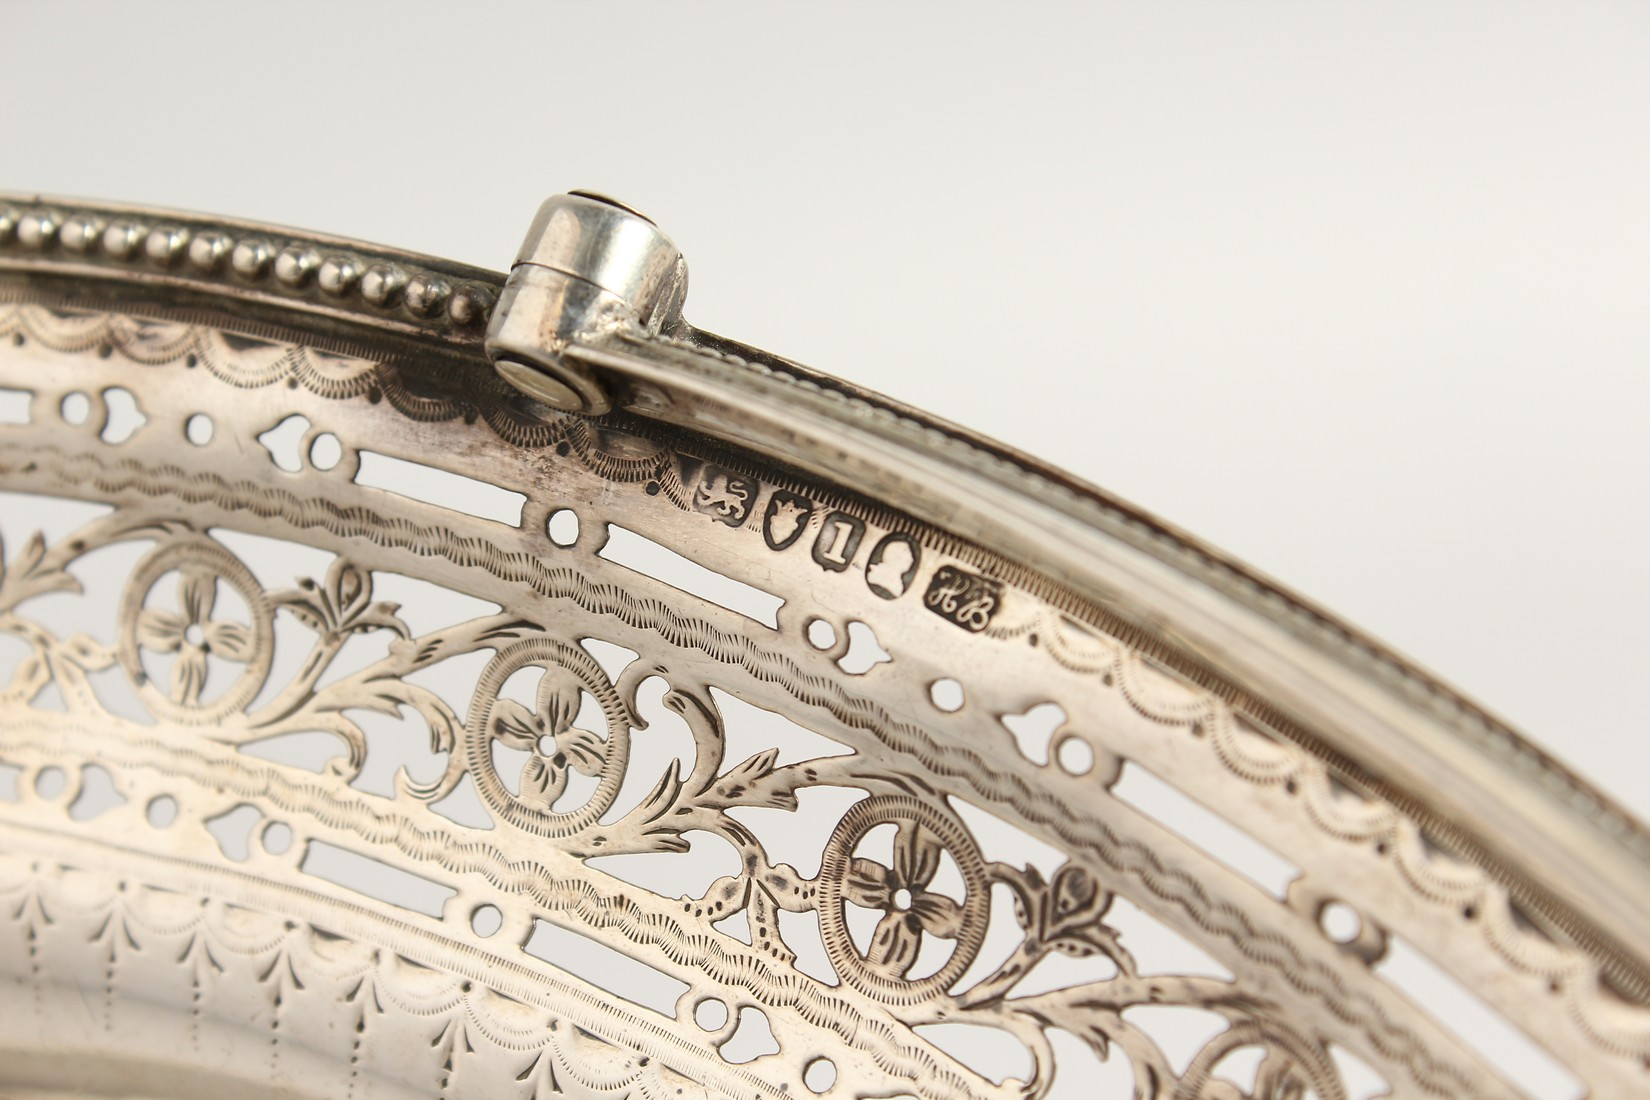 A FINE GEORGE III SILVER CAKE BASKET by HESTER BATEMAN with bead edges and swing handles. London - Image 3 of 5